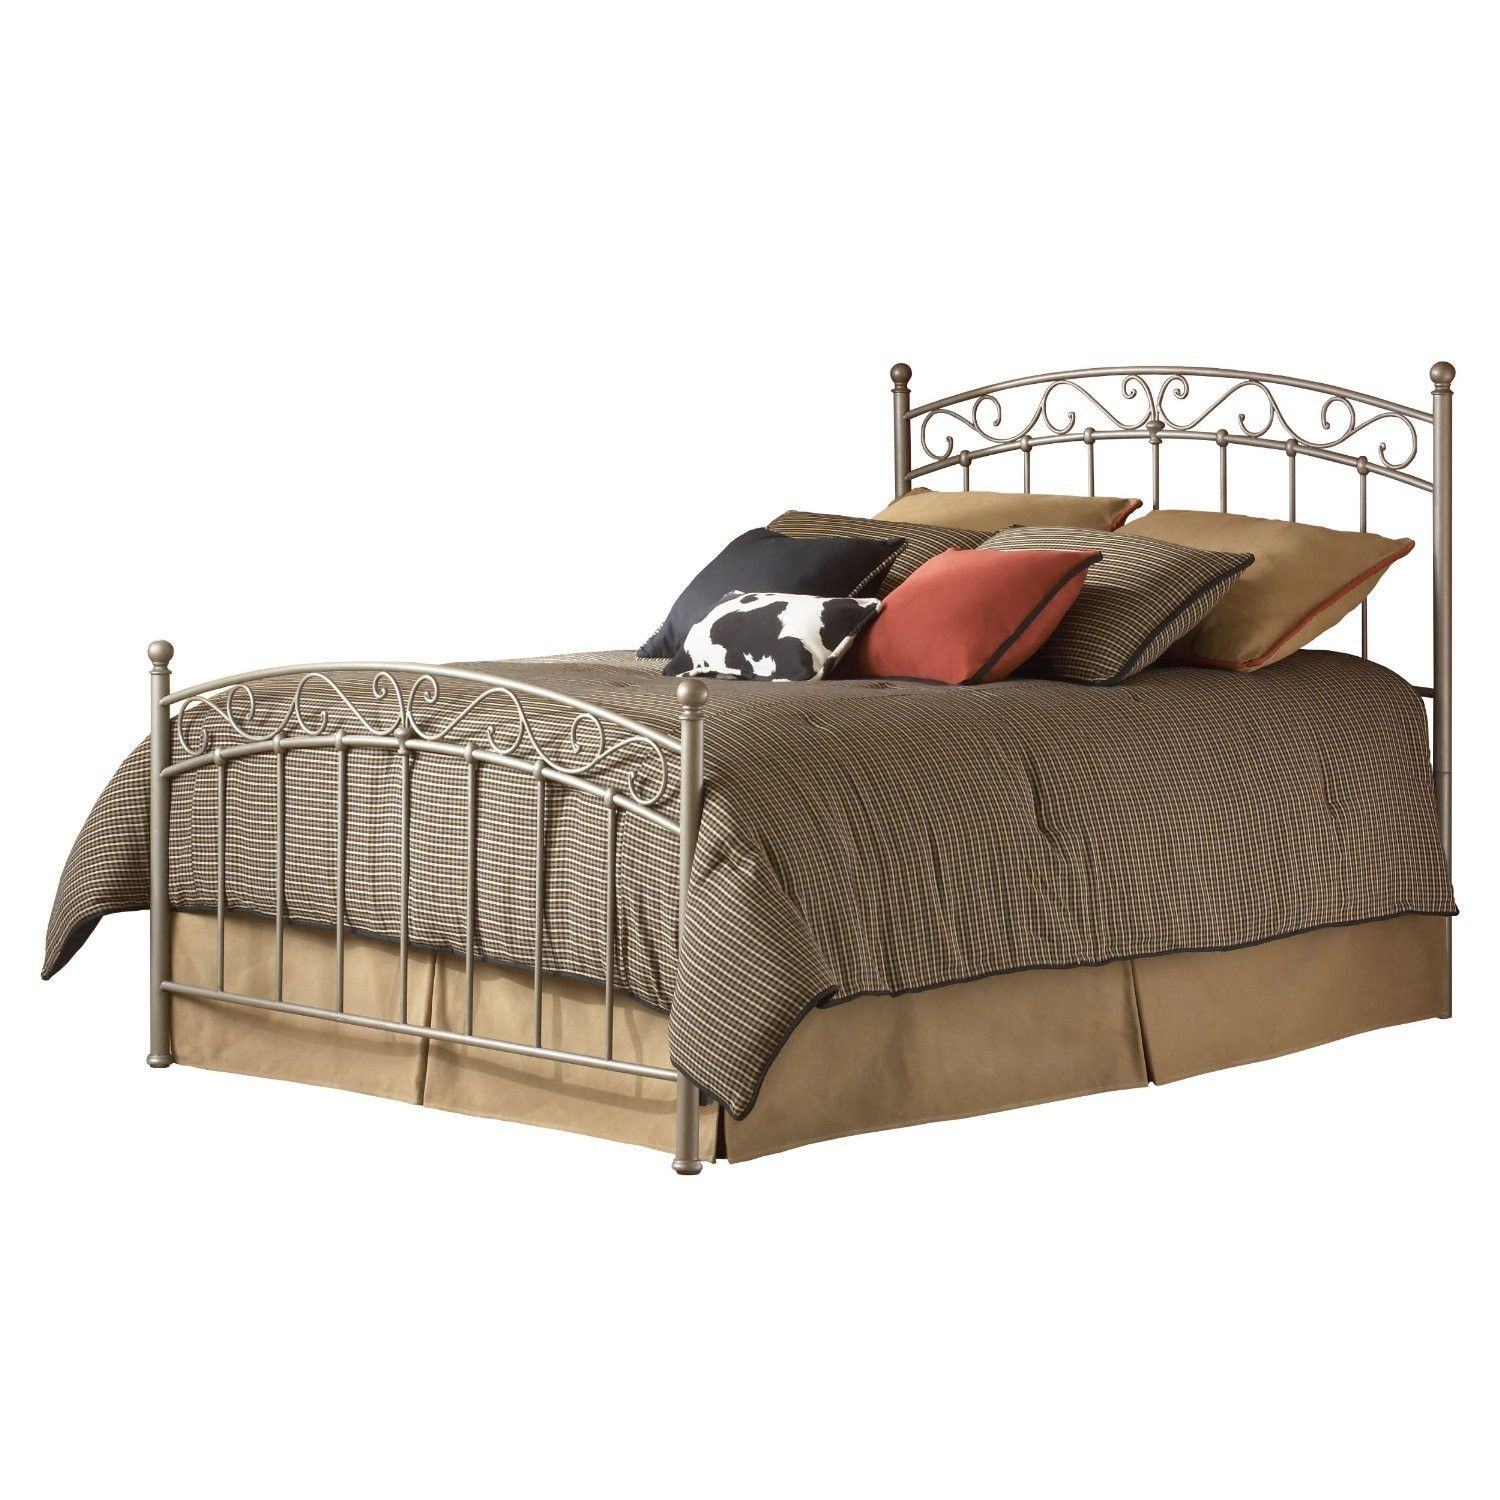 Queen Size Gentle Arch Metal Bed With Headboard & Footboard